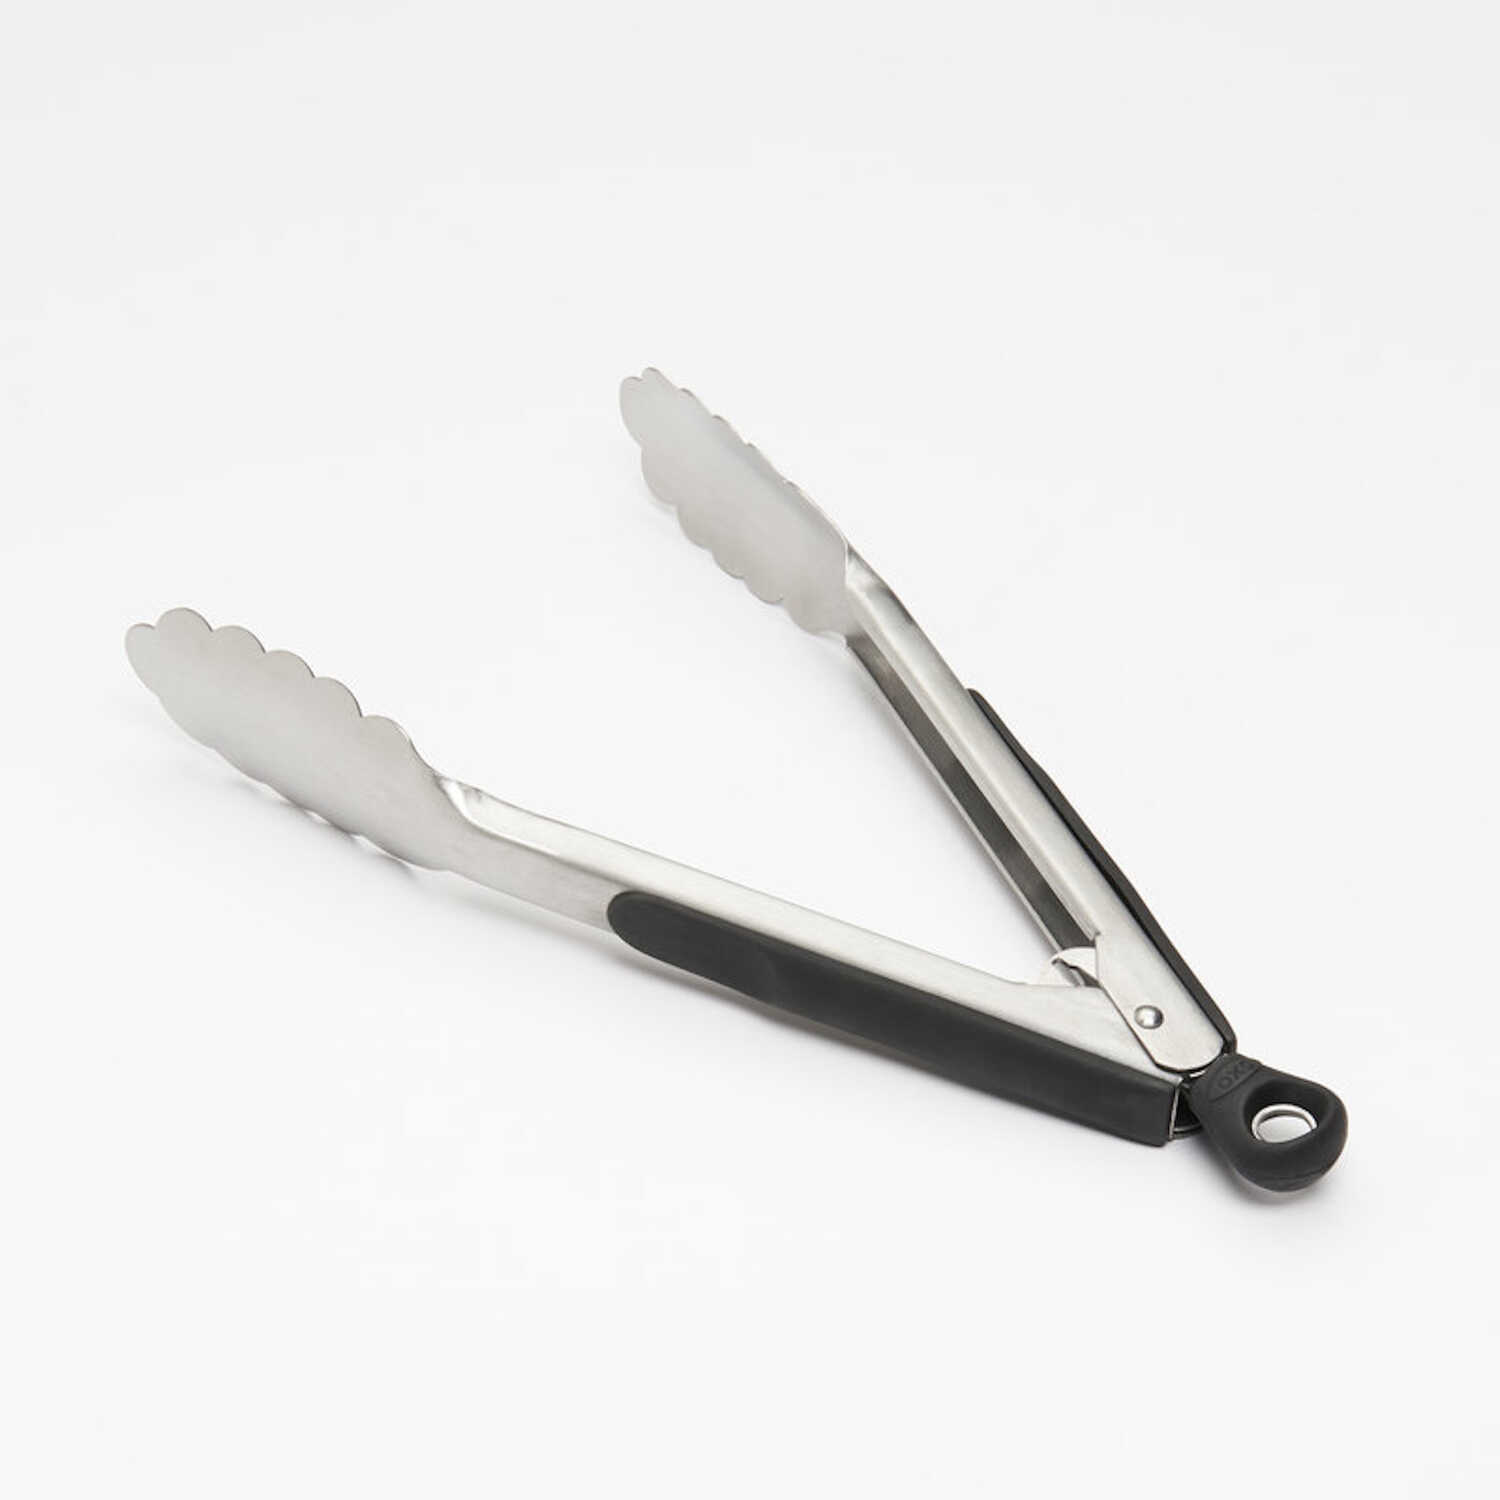 OXO  Good Grips  1 in. W x 11 in. L Silver/Black  Stainless Steel  Tongs